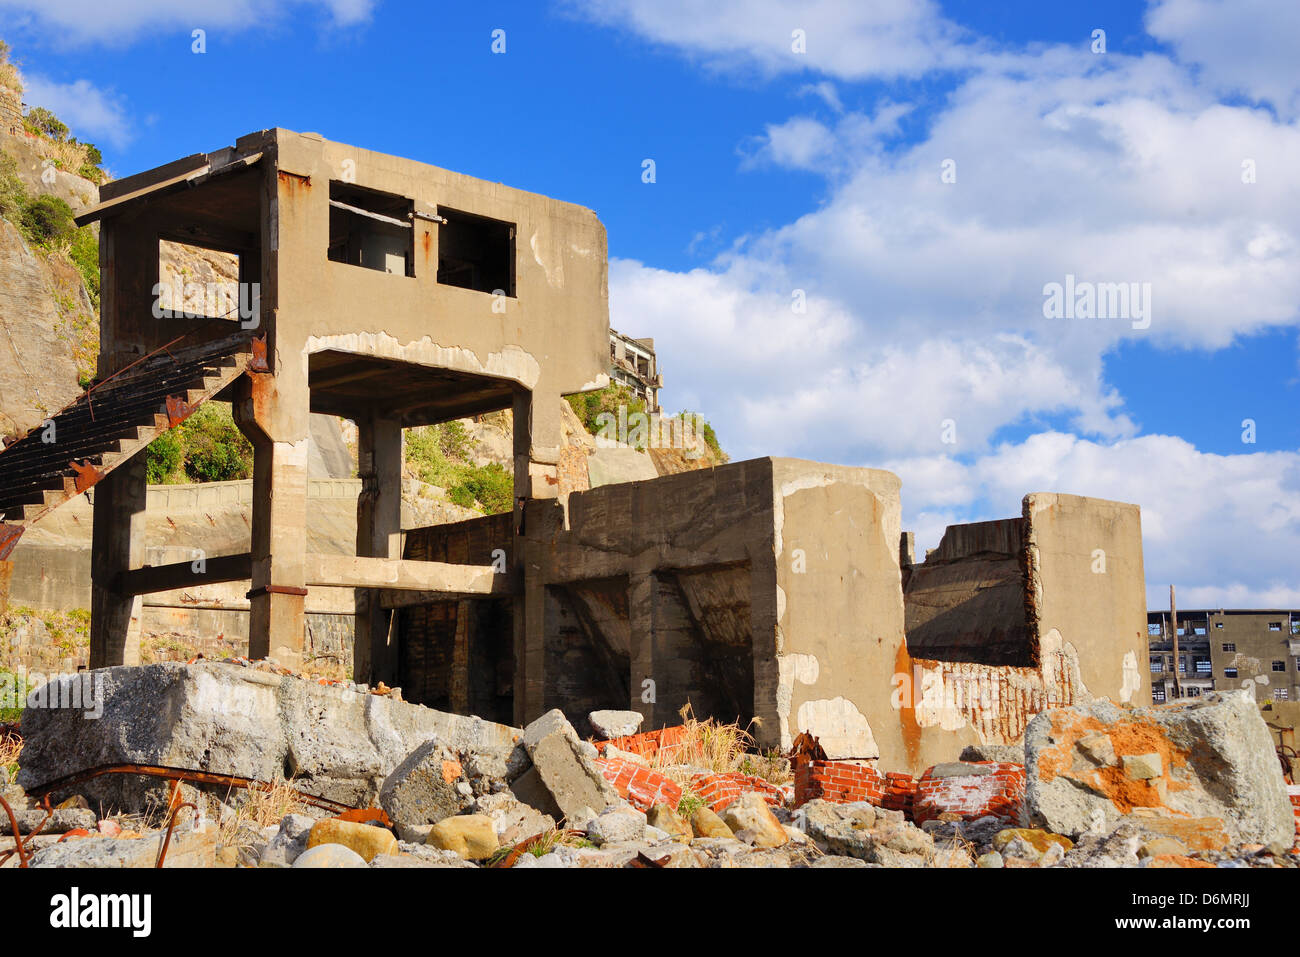 Ruins on the abandoned island of Gunkanjima off the coast of Nagasaki Prefecture, Japan. - Stock Image